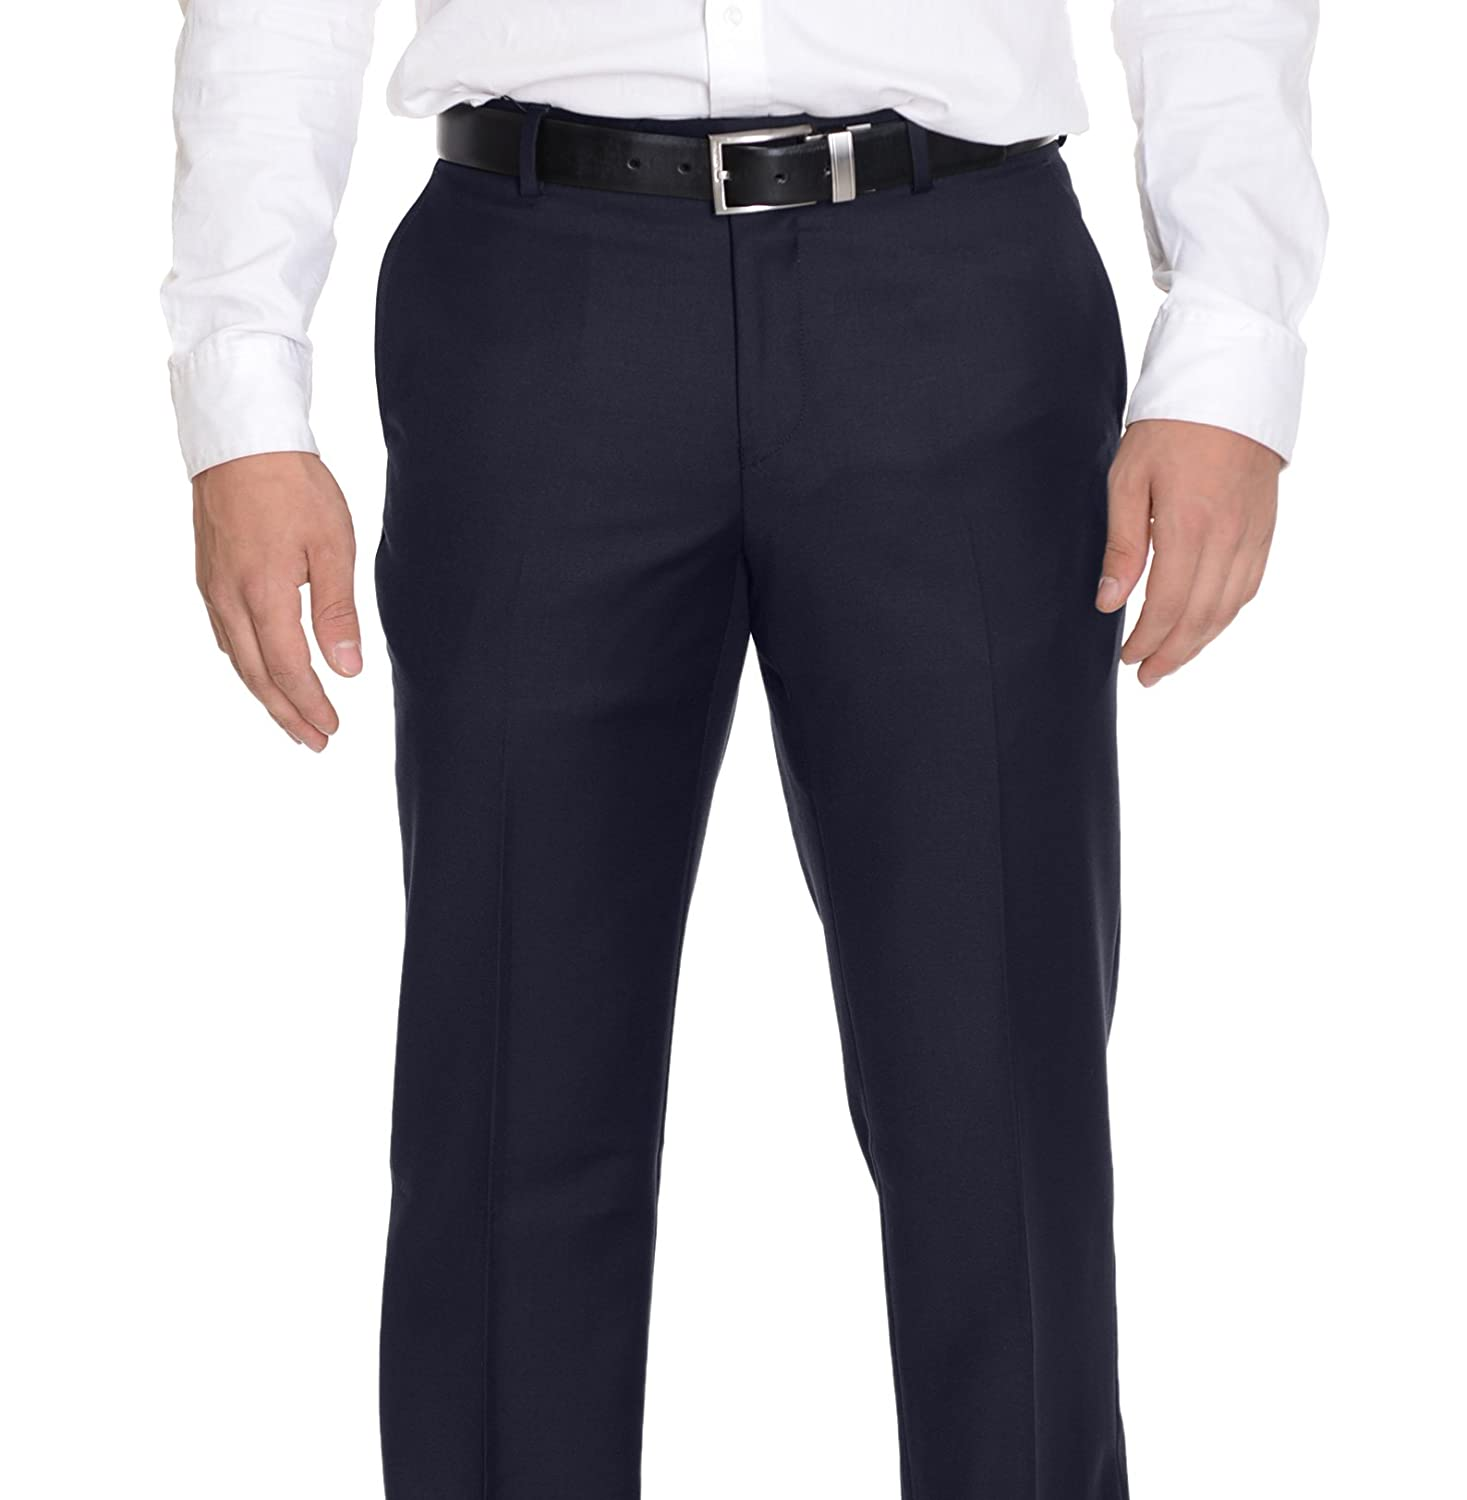 Mens Extra Slim Fit Solid Navy Blue Flat Front Wool Dress Pants ...